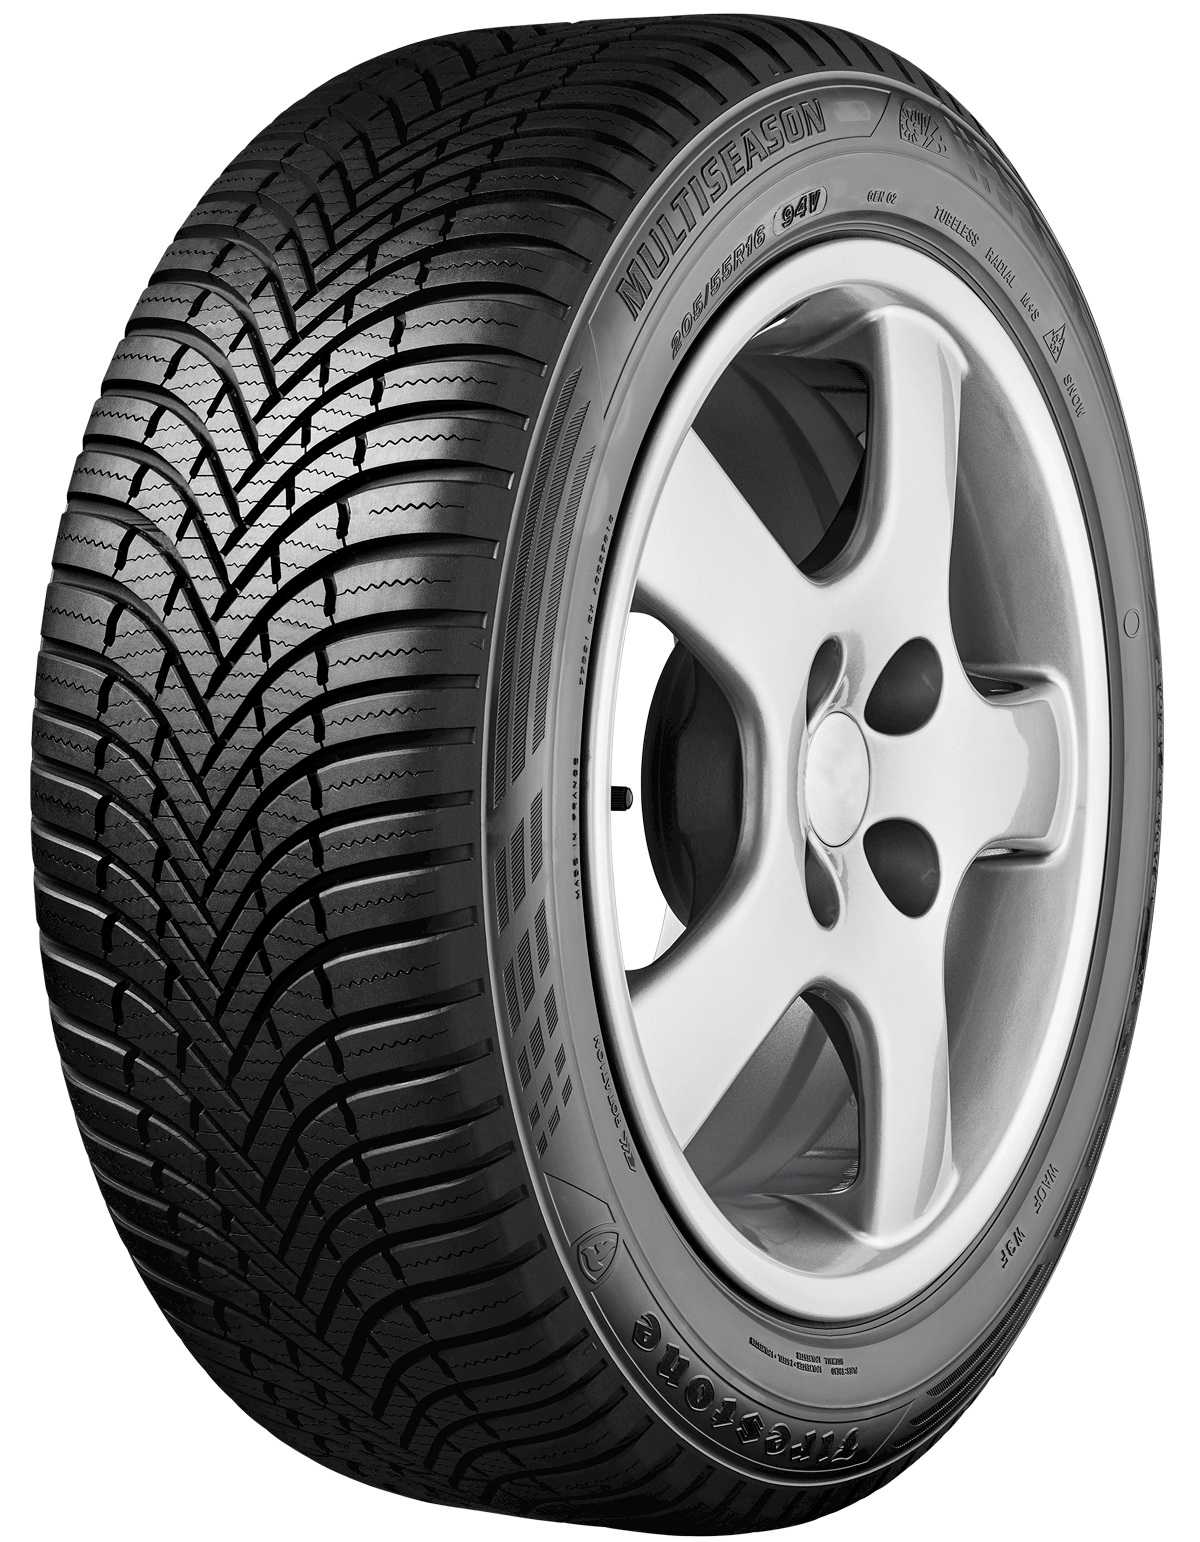 Anvelopa All Season Firestone Multiseason Gen02 195/55R16 91H